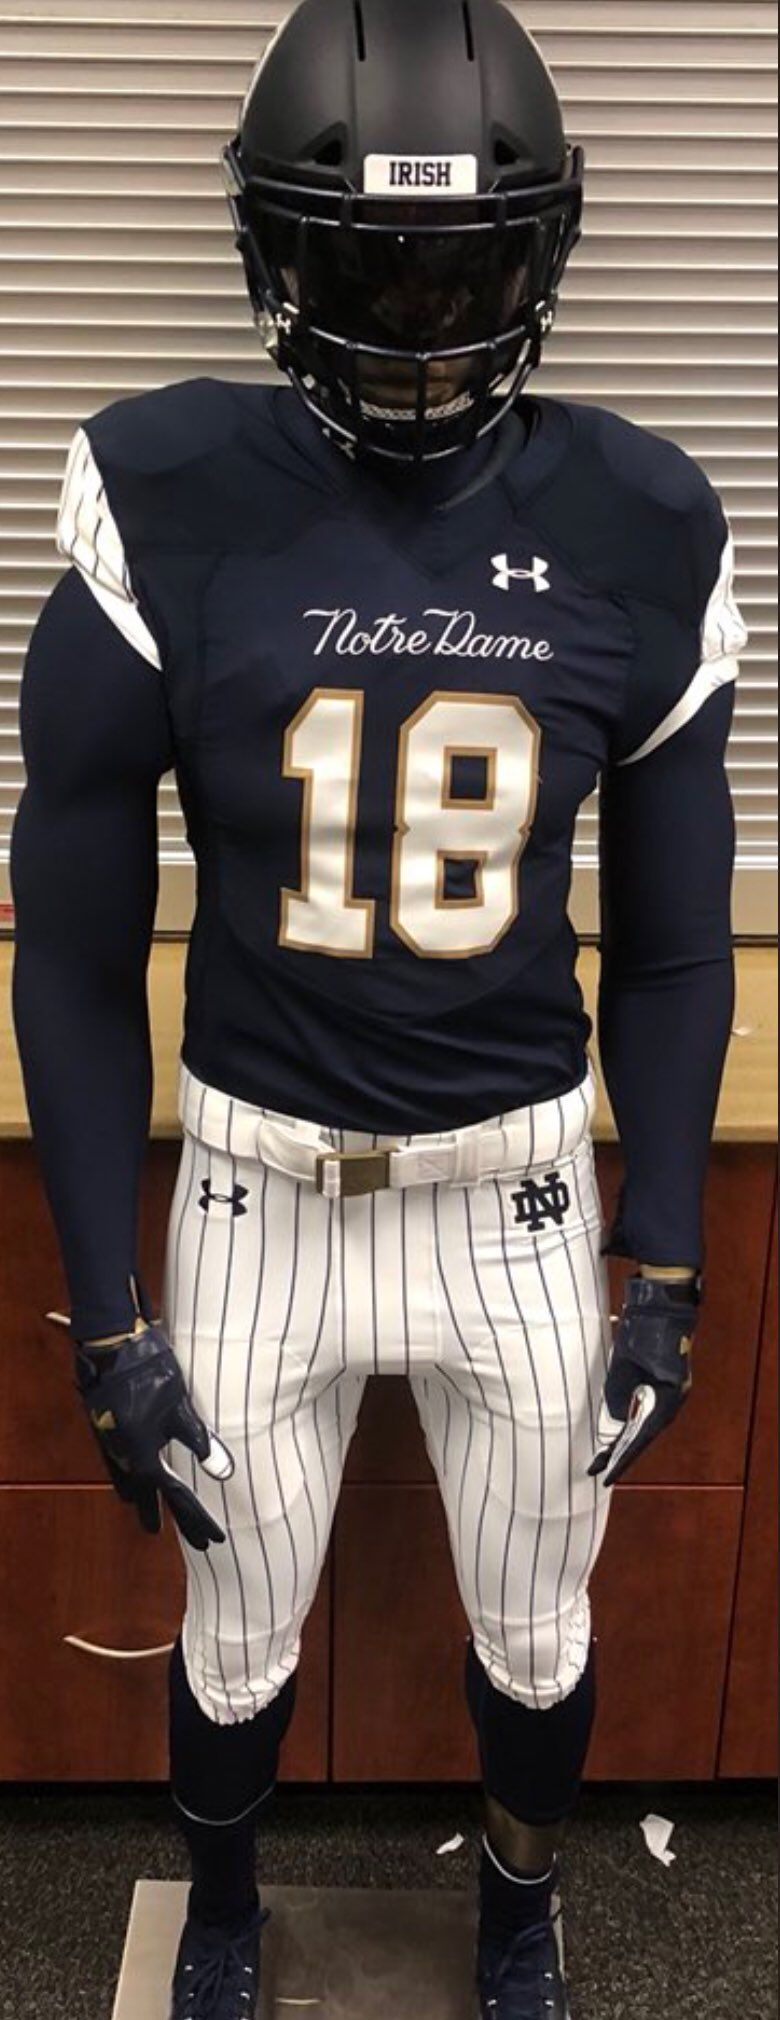 online store 16b89 8023a Notre Dame uniform for game at Yankee Stadium | ND & Vikings ...